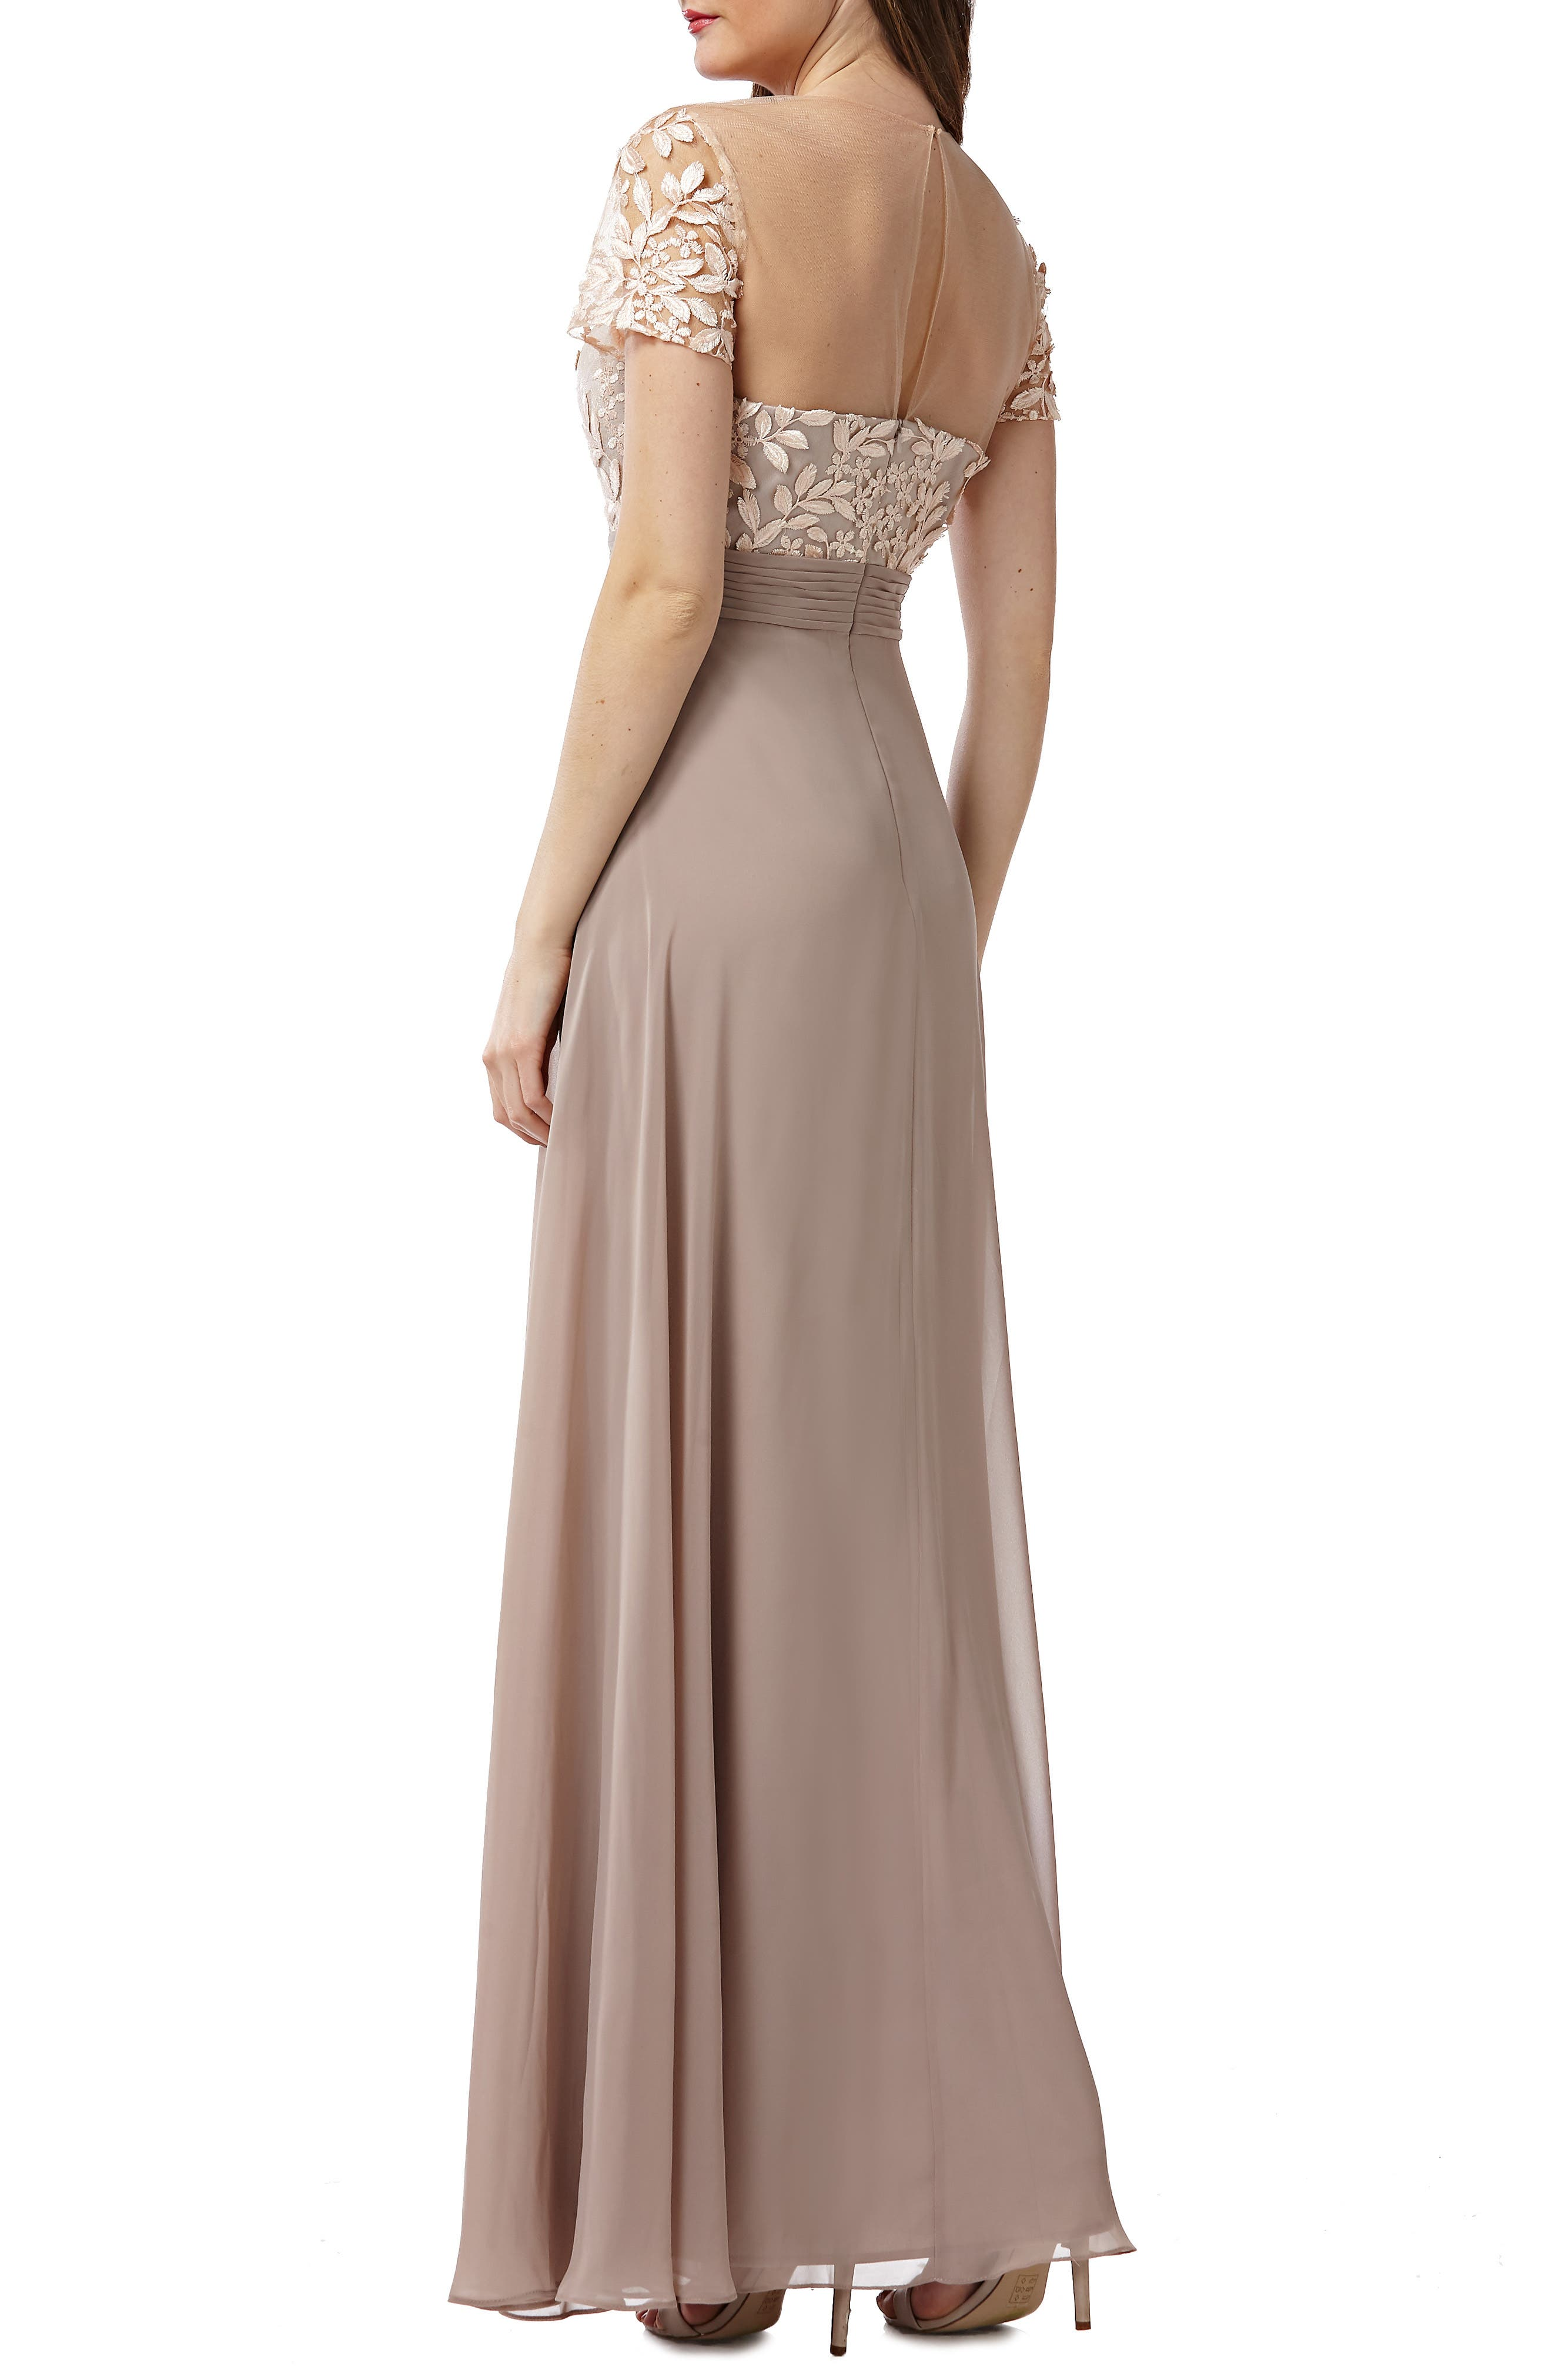 JS COLLECTIONS,                             Embroidered Illusion Bodice Gown,                             Alternate thumbnail 2, color,                             BLUSH/ NUDE